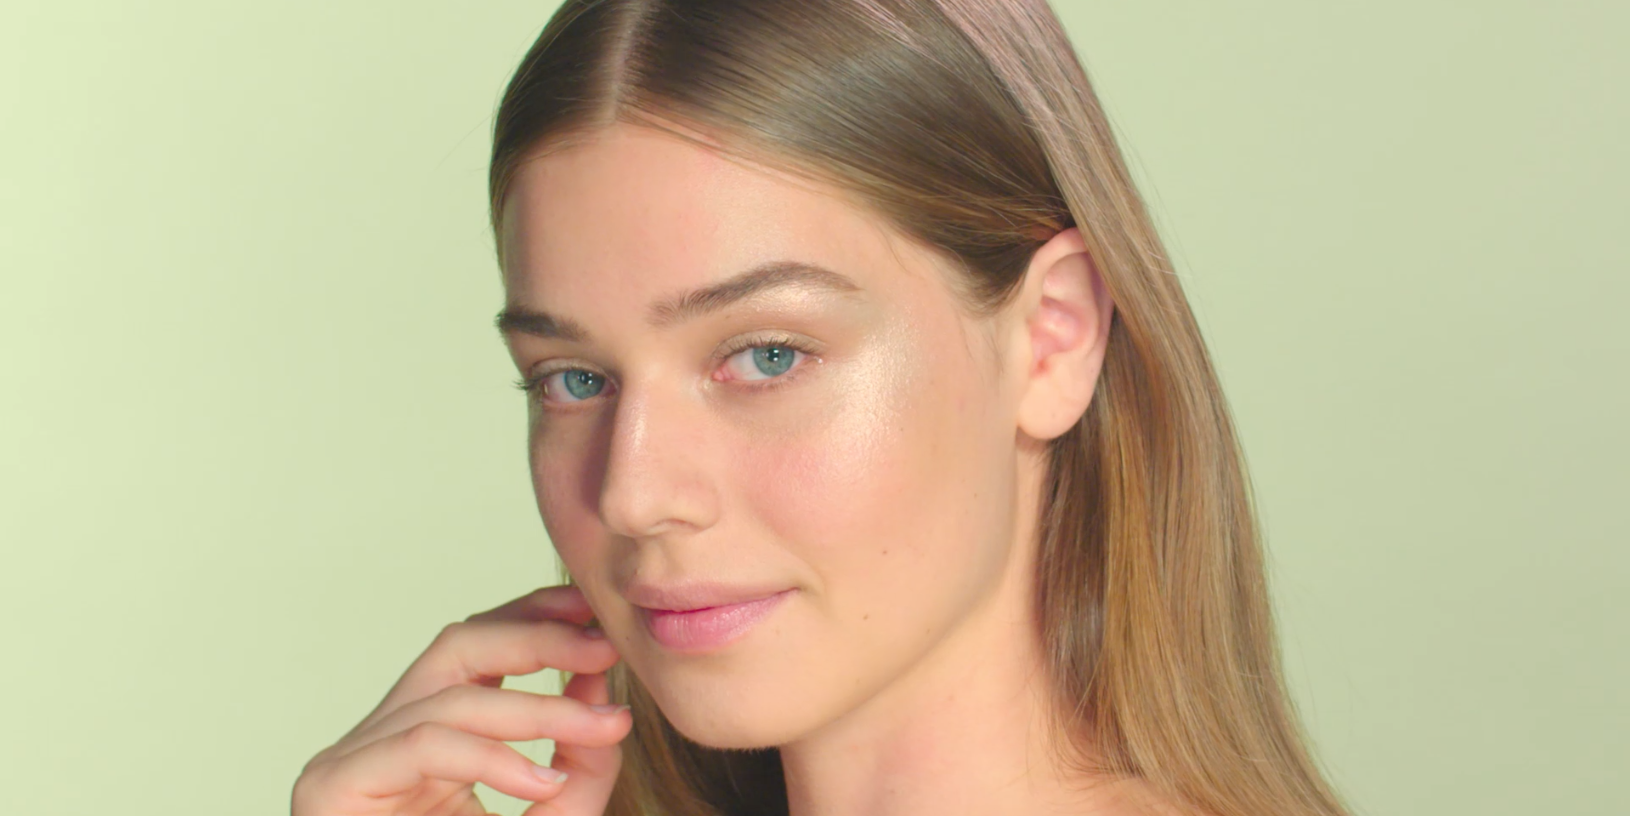 A step-by-step guide to that perfect lit-from-within glow.